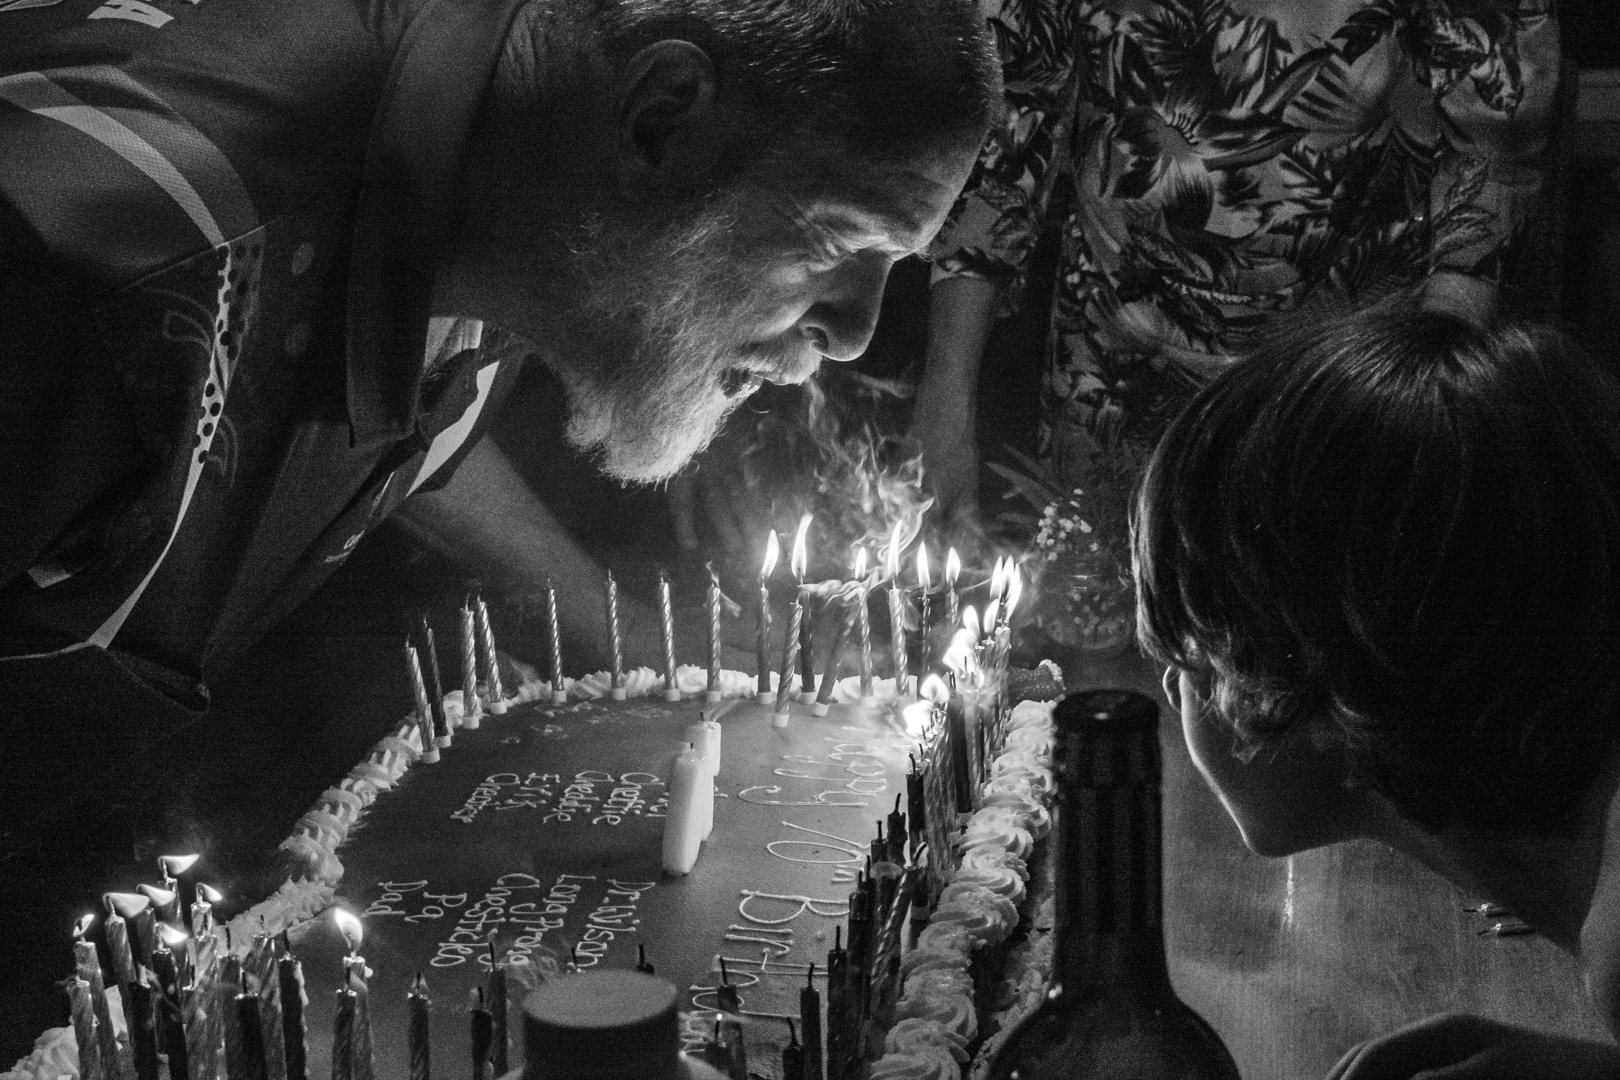 Open_Pa's Blowing Out 70 Candles_Esther Andrews AB Grade_Print Merit